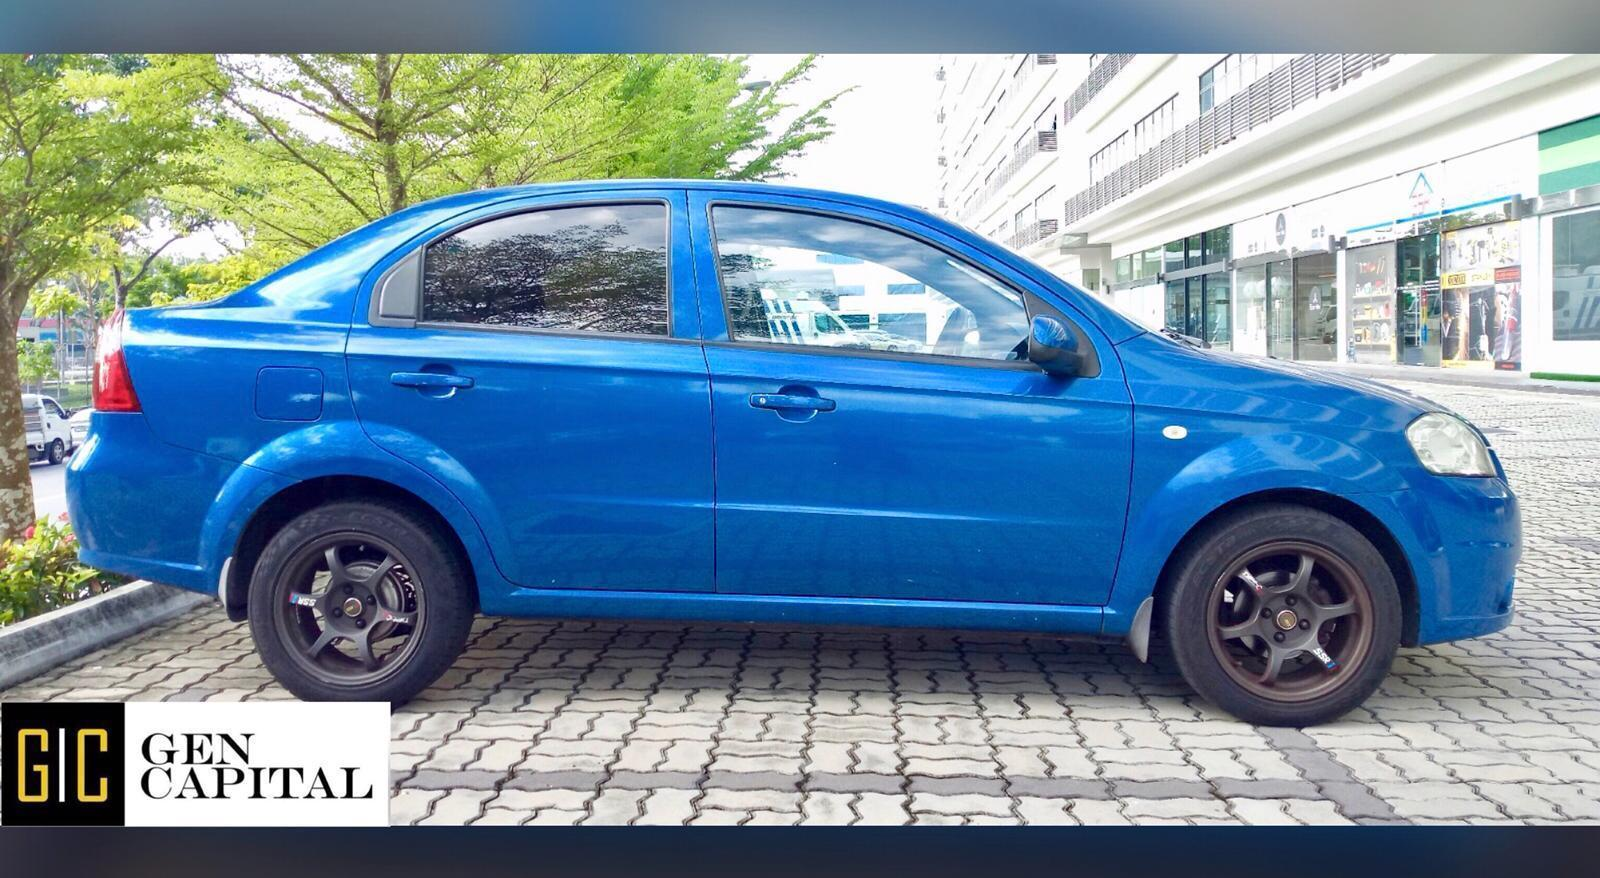 Chevrolet Aveo Sedan 1.4A @ Best rates, full servicing provided!